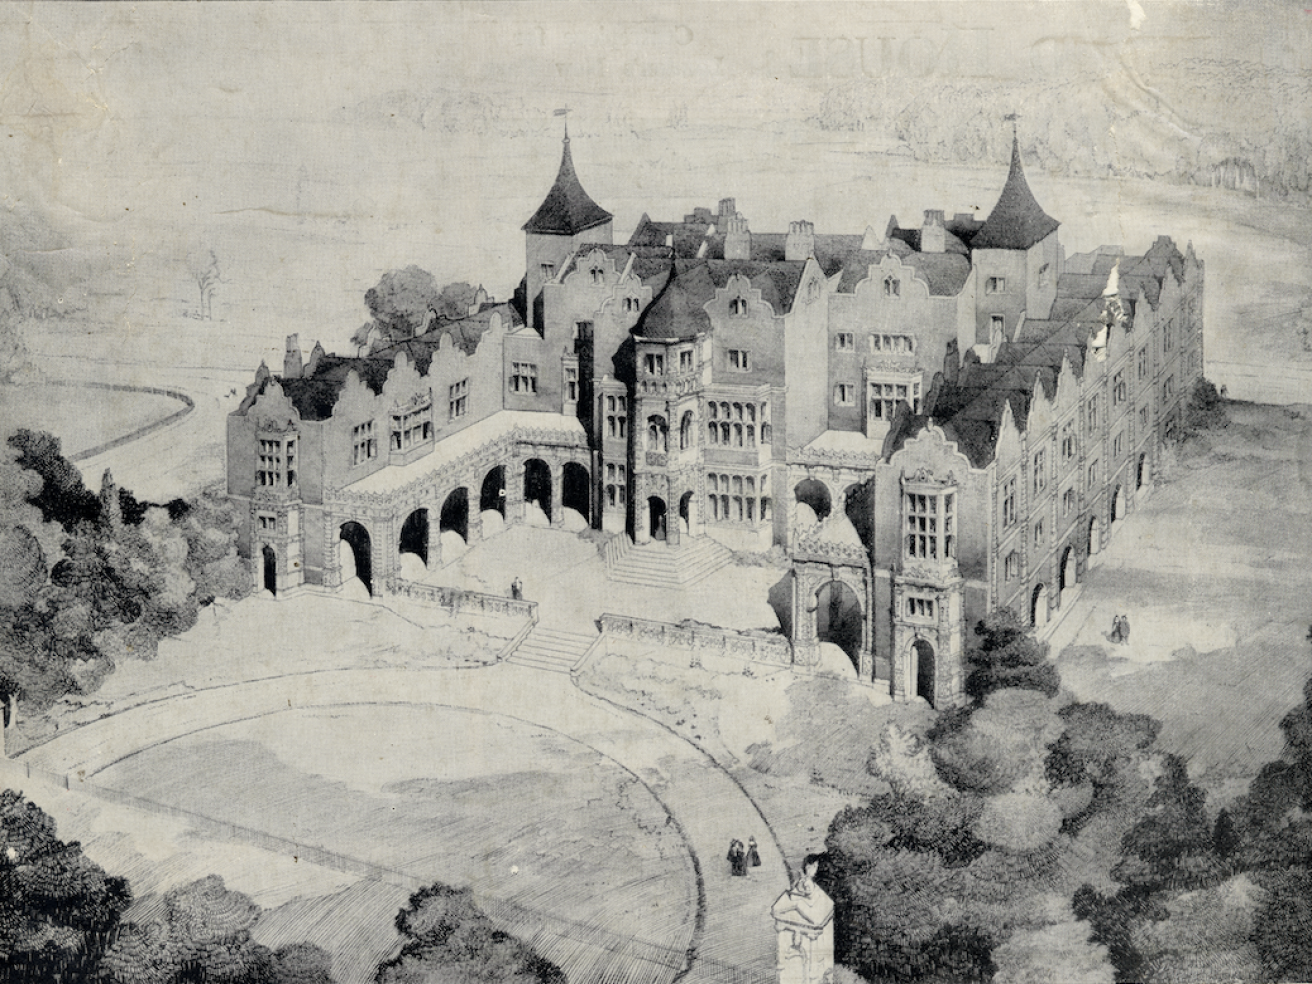 Learn more about the history of Opera Holland Park